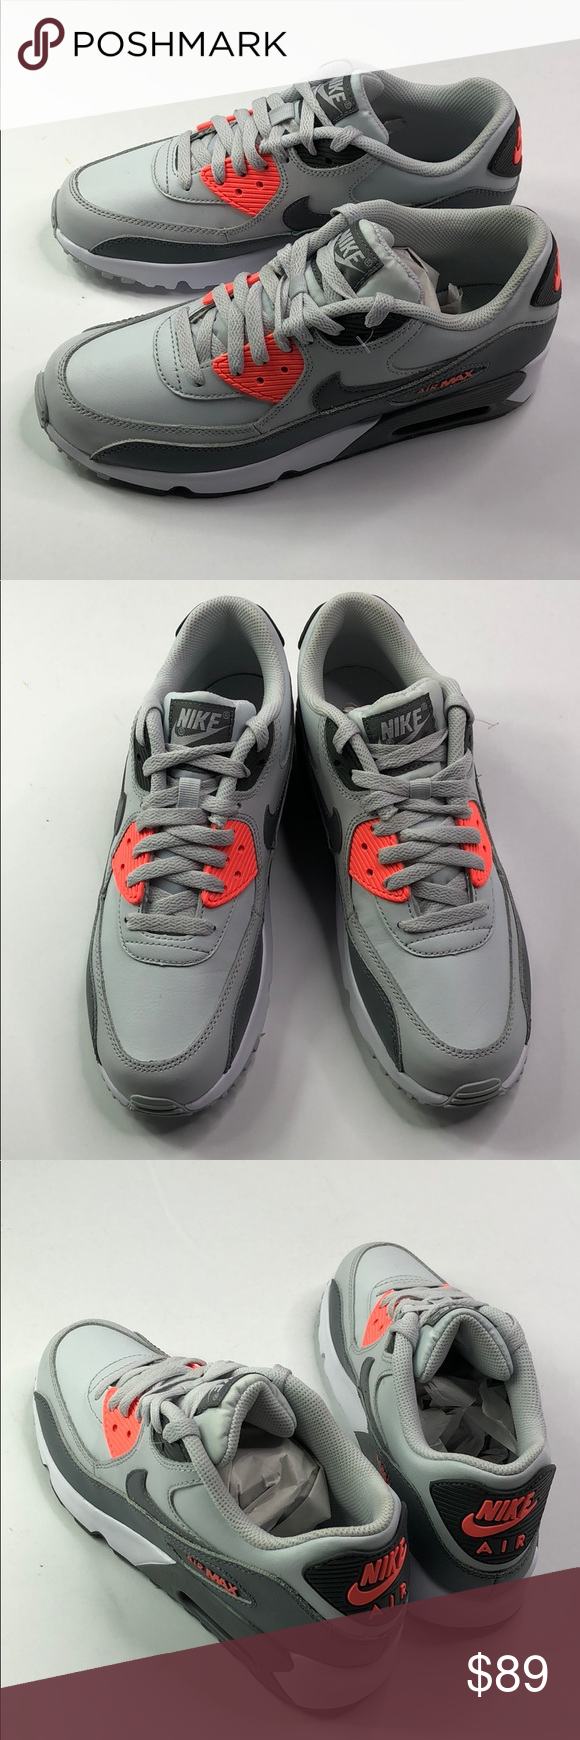 buy popular 24c23 b9518 Air Max 90 Leather GS Size-7 MEN 8.5 WOMEN PURE PLATINUM COOL GREY RELEASED  2016 DEADSTOCK WITHOUT ORIGINAL BOX Nike Shoes Sneakers